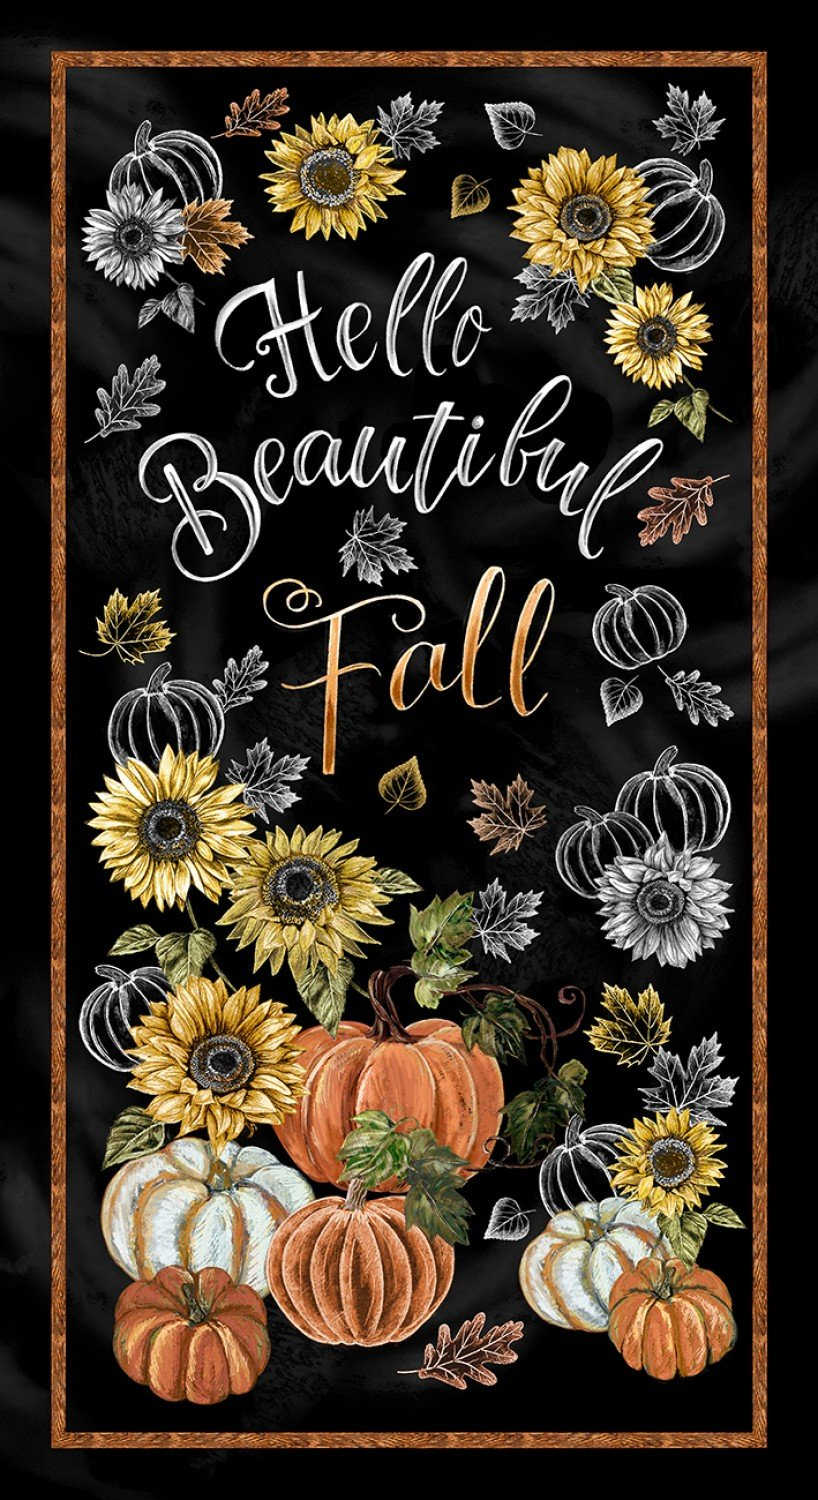 Black Hello Beautiful Fall Panel by Timeless Treasures Panel-C7795-Black